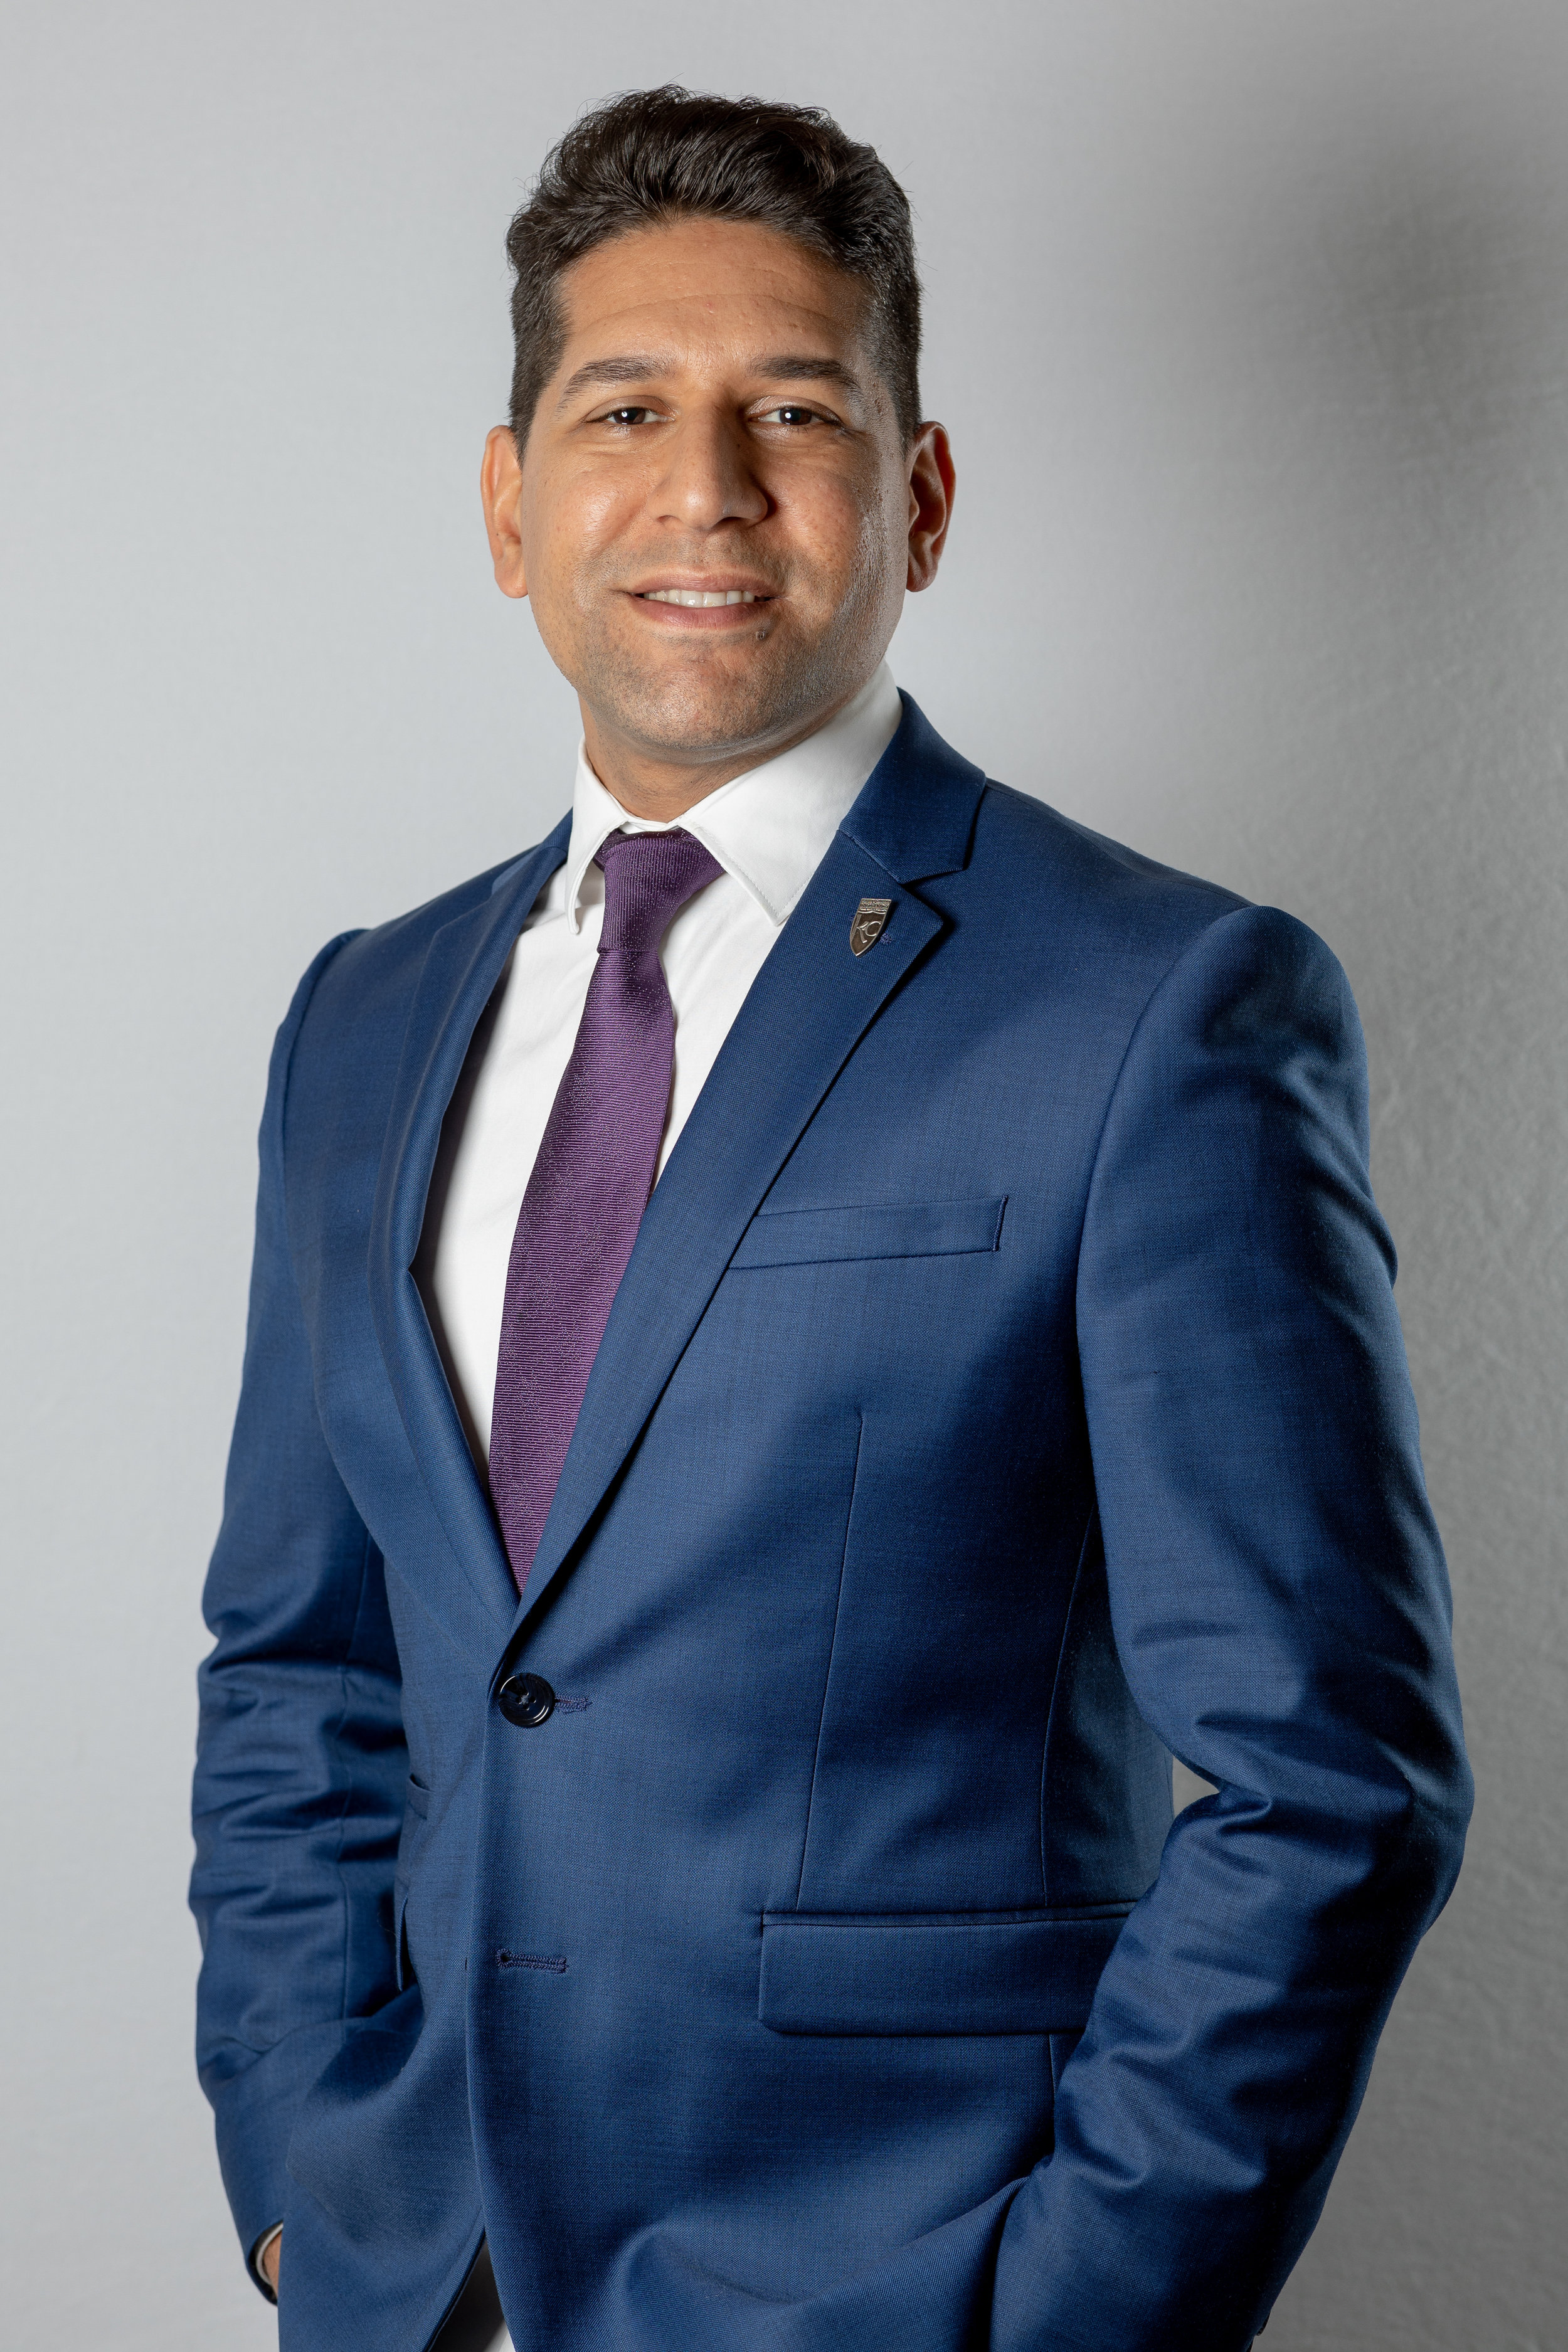 """Alfred R. Lugo, MBA, FIC - Insurance Field Agent - Owens AgencyCA LIC# 0L41723Office: (310) 212-5632Cell: (562) 556-2154Email: alfred.lugo@kofc.orgAlfred Lugo is a Field Agent under the Owens Agency located in Torrance CA. Alfred was born and raised in Los Angeles California and grandson to a Fourth Degree Knight, Alfred Vincent Lugo. Alfred holds an MBA and a Master's Degree in Finance from Keller Graduate School of Business in Pomona, CA. Before joining the Knights of Columbus Field force, his previous positions he has held in his professional life include Financial Analyst, Wealth and Financial Planner, Operations Manager, Loan Officer and Branch Manager in the residential mortgage industry.""""I joined the Knights because I wanted to make a positive impact in my community and the Catholic families that live in it. When I discovered the history and story of Father Michael McGivney, I was inspired to join the order and serve my brother Knights and their families' full time. I want to help carry on Father McGivney's legacy and mission to the next generation of Catholic families.""""Alfred continues to draw inspiration from our Order's founder, Father McGivney, our Supreme Knight Carl Anderson, as well as the entire Field Force, the men and women who work at our Home Office, and especially from all his brother Knights and their families. He recognizes that the Knights of Columbus is an organization that combines sound business practices with the highest moral and ethical standards, which reflect the Catholic faith and permeate every aspect of the Order and its financial products.""""It is a unique opportunity to serve an organization that gives so generously to charitable causes, and which consistently provides the very finest insurance products, services and fraternal benefits that are available today, while upholding our Catholic beliefs.""""I look forward to getting to know you and your families, and serving you through the years.-Alfred"""